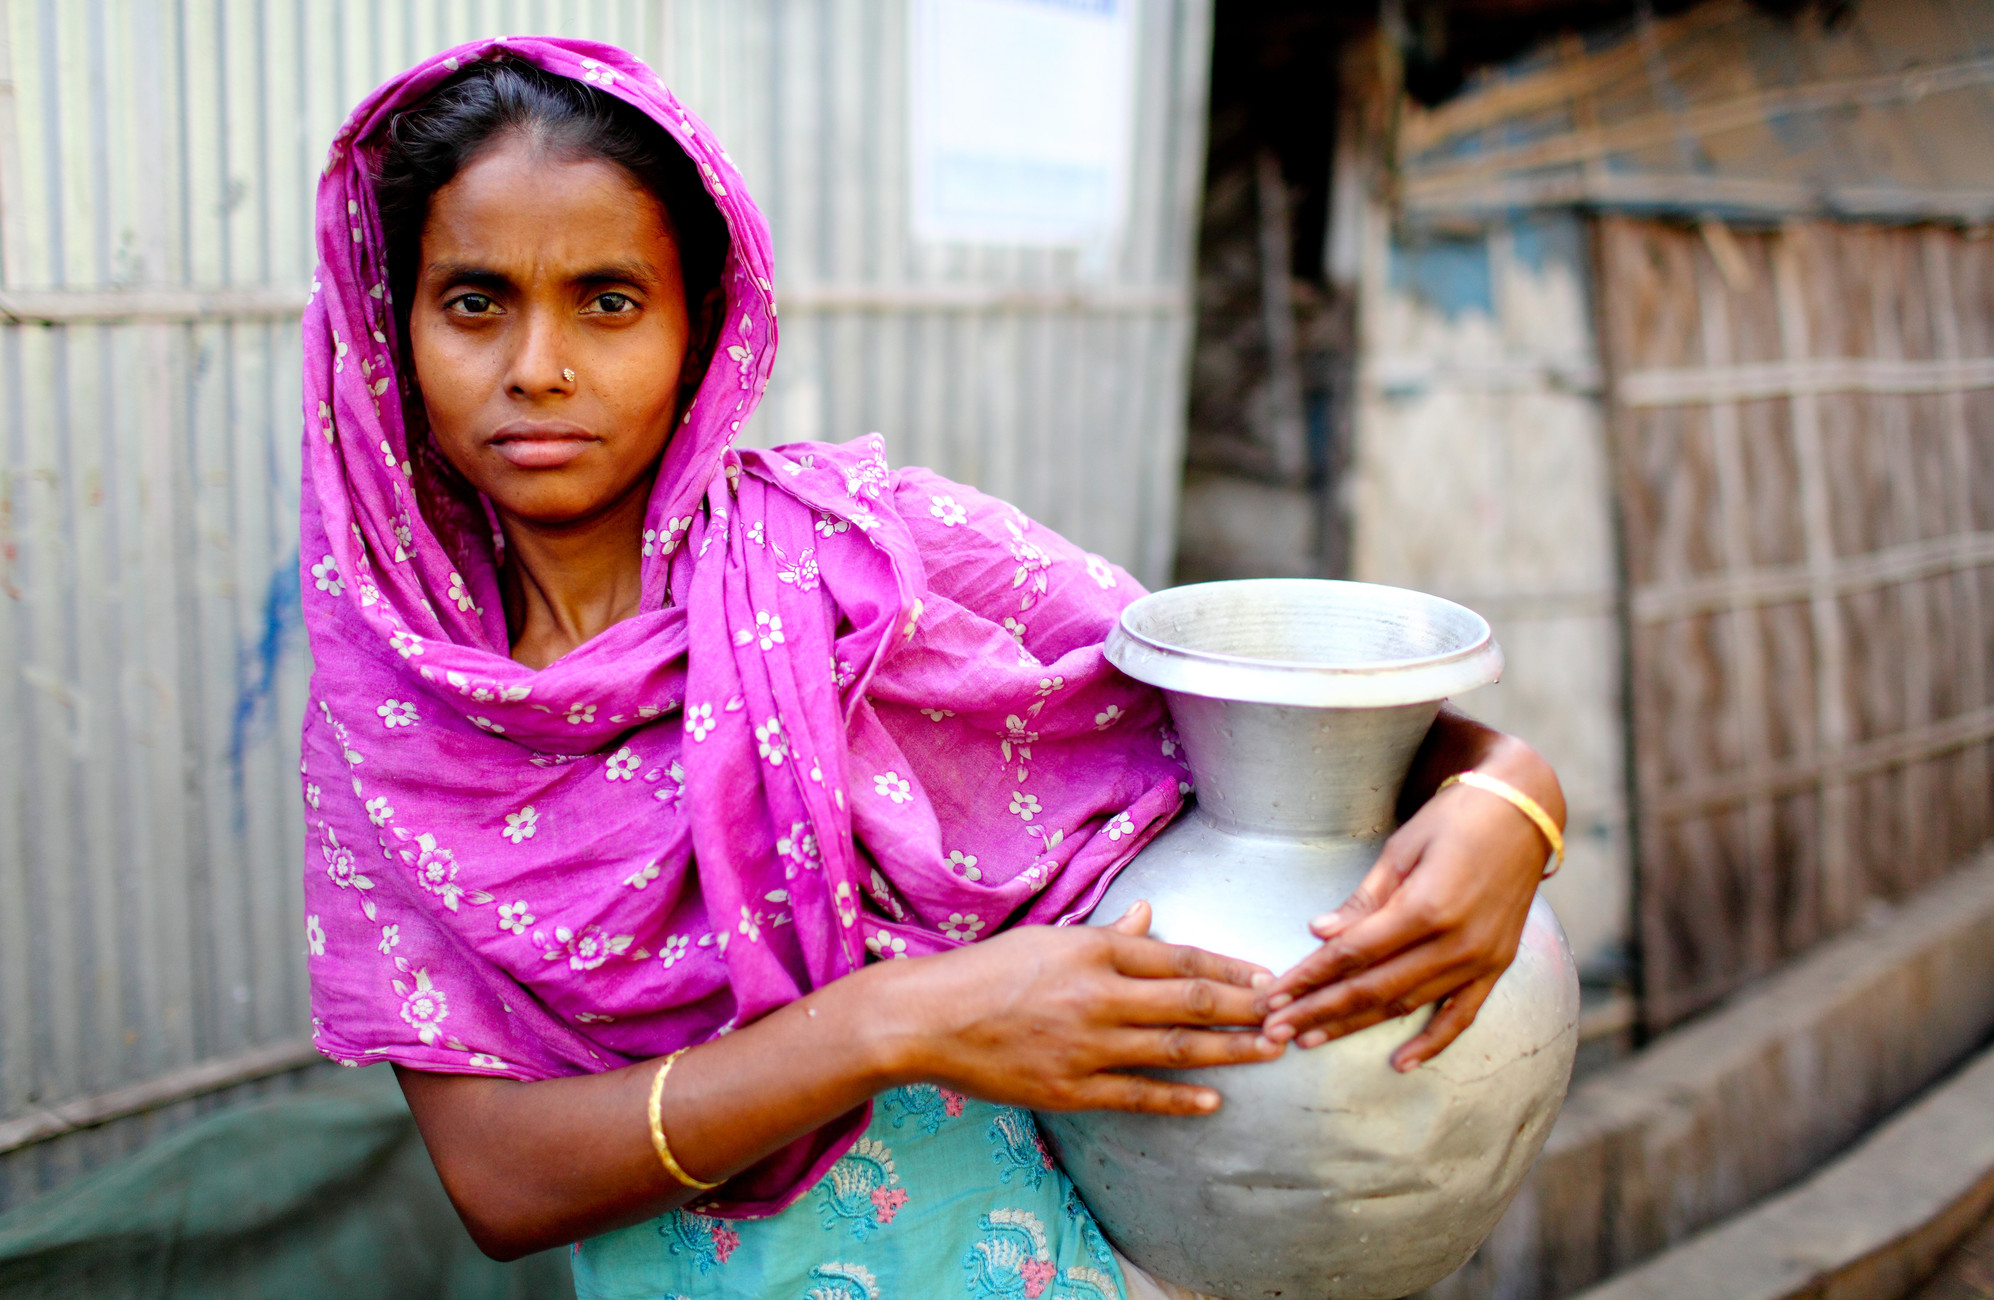 Collecting water in Dhaka